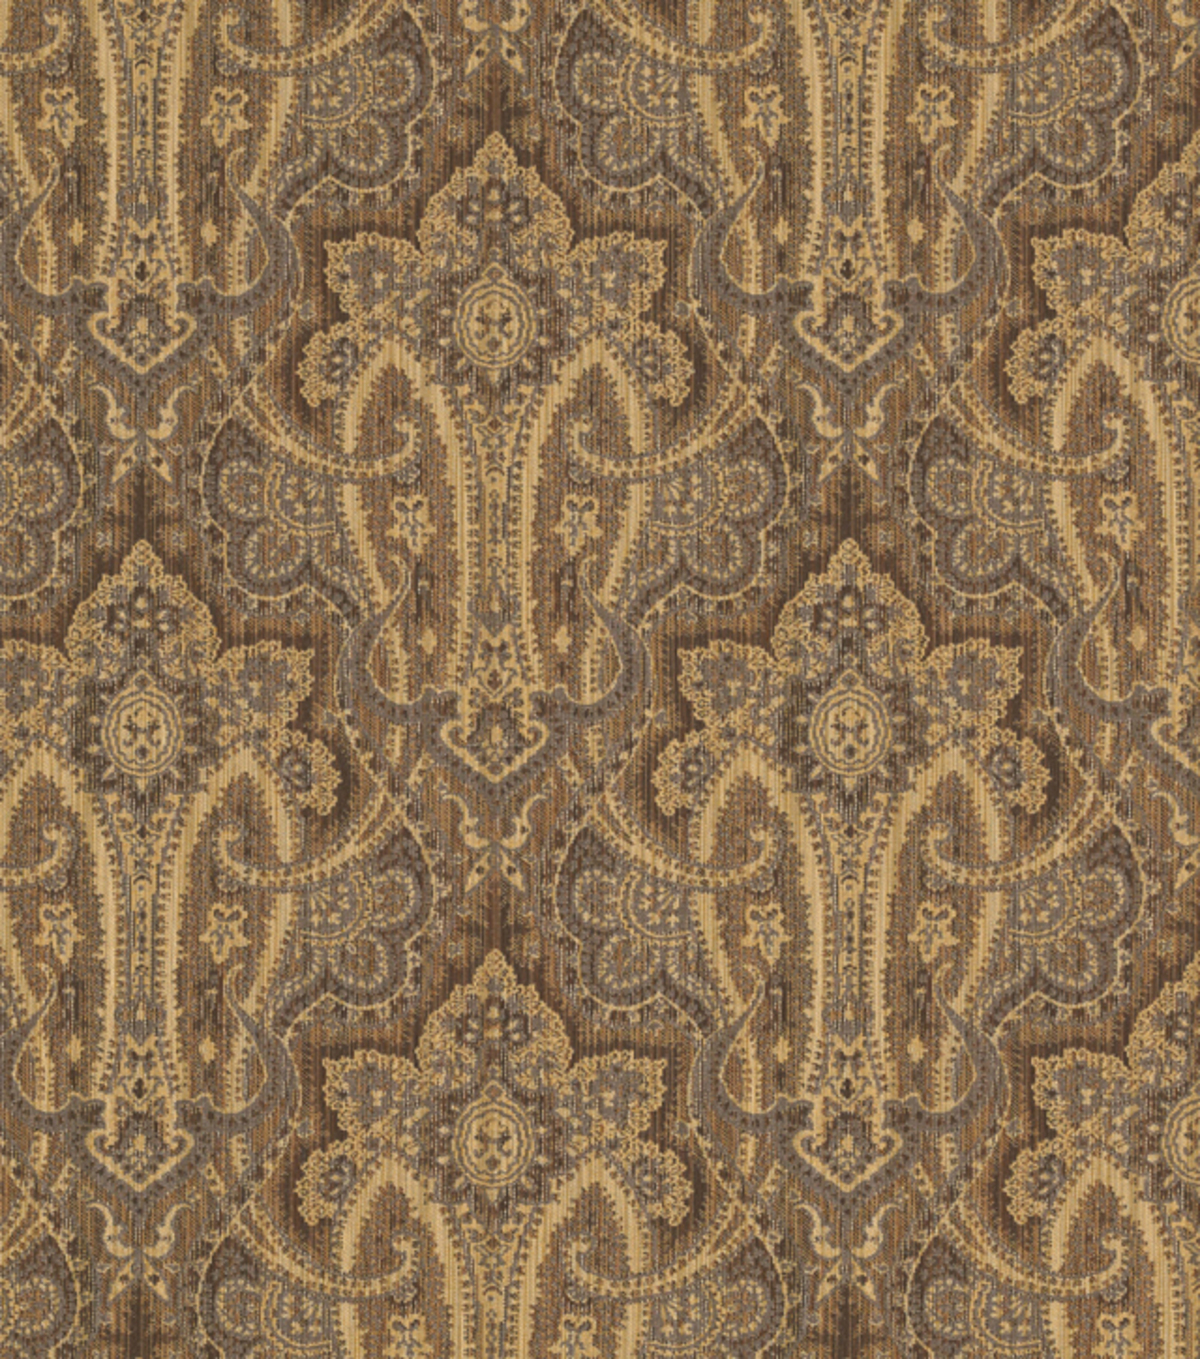 Home Decor 8\u0022x8\u0022 Fabric Swatch-Lauden Way Chocolate